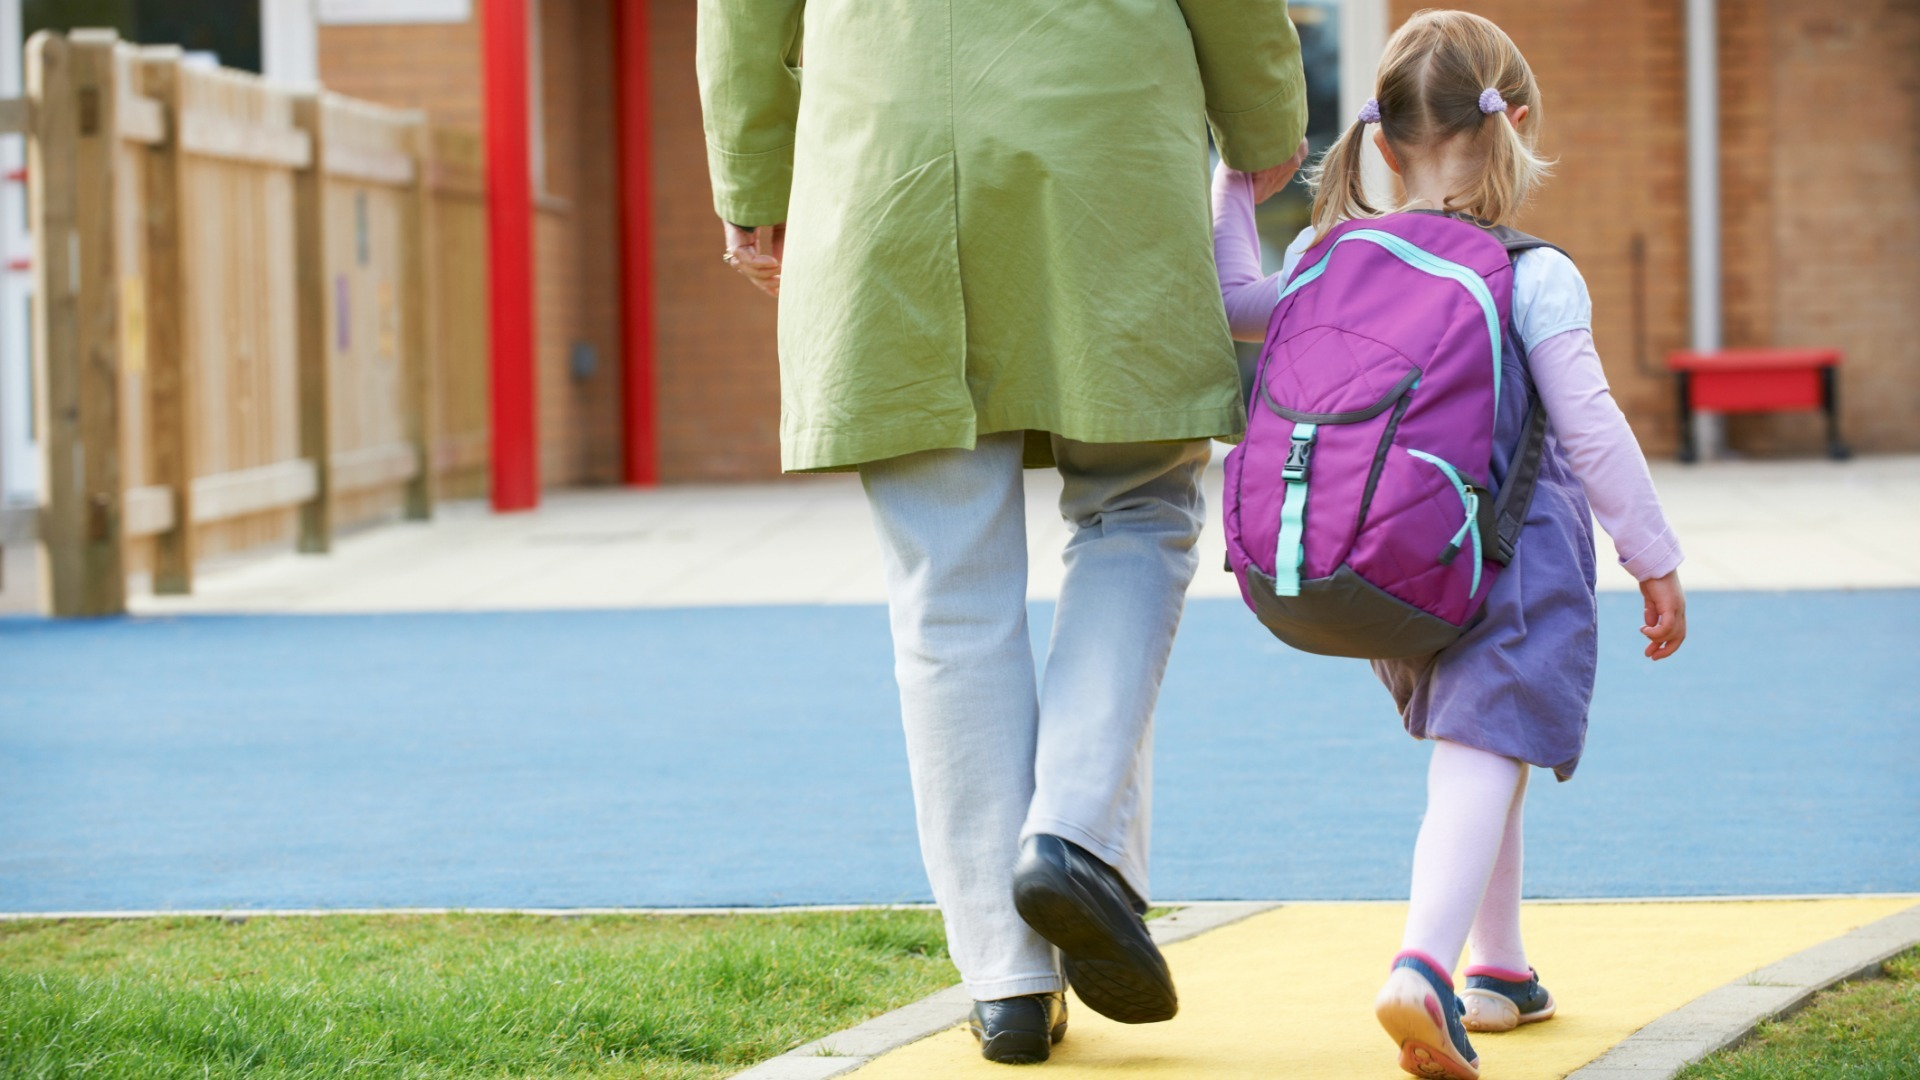 9 Concerns every parent has when kids start school (and how to deal) –  SheKnows